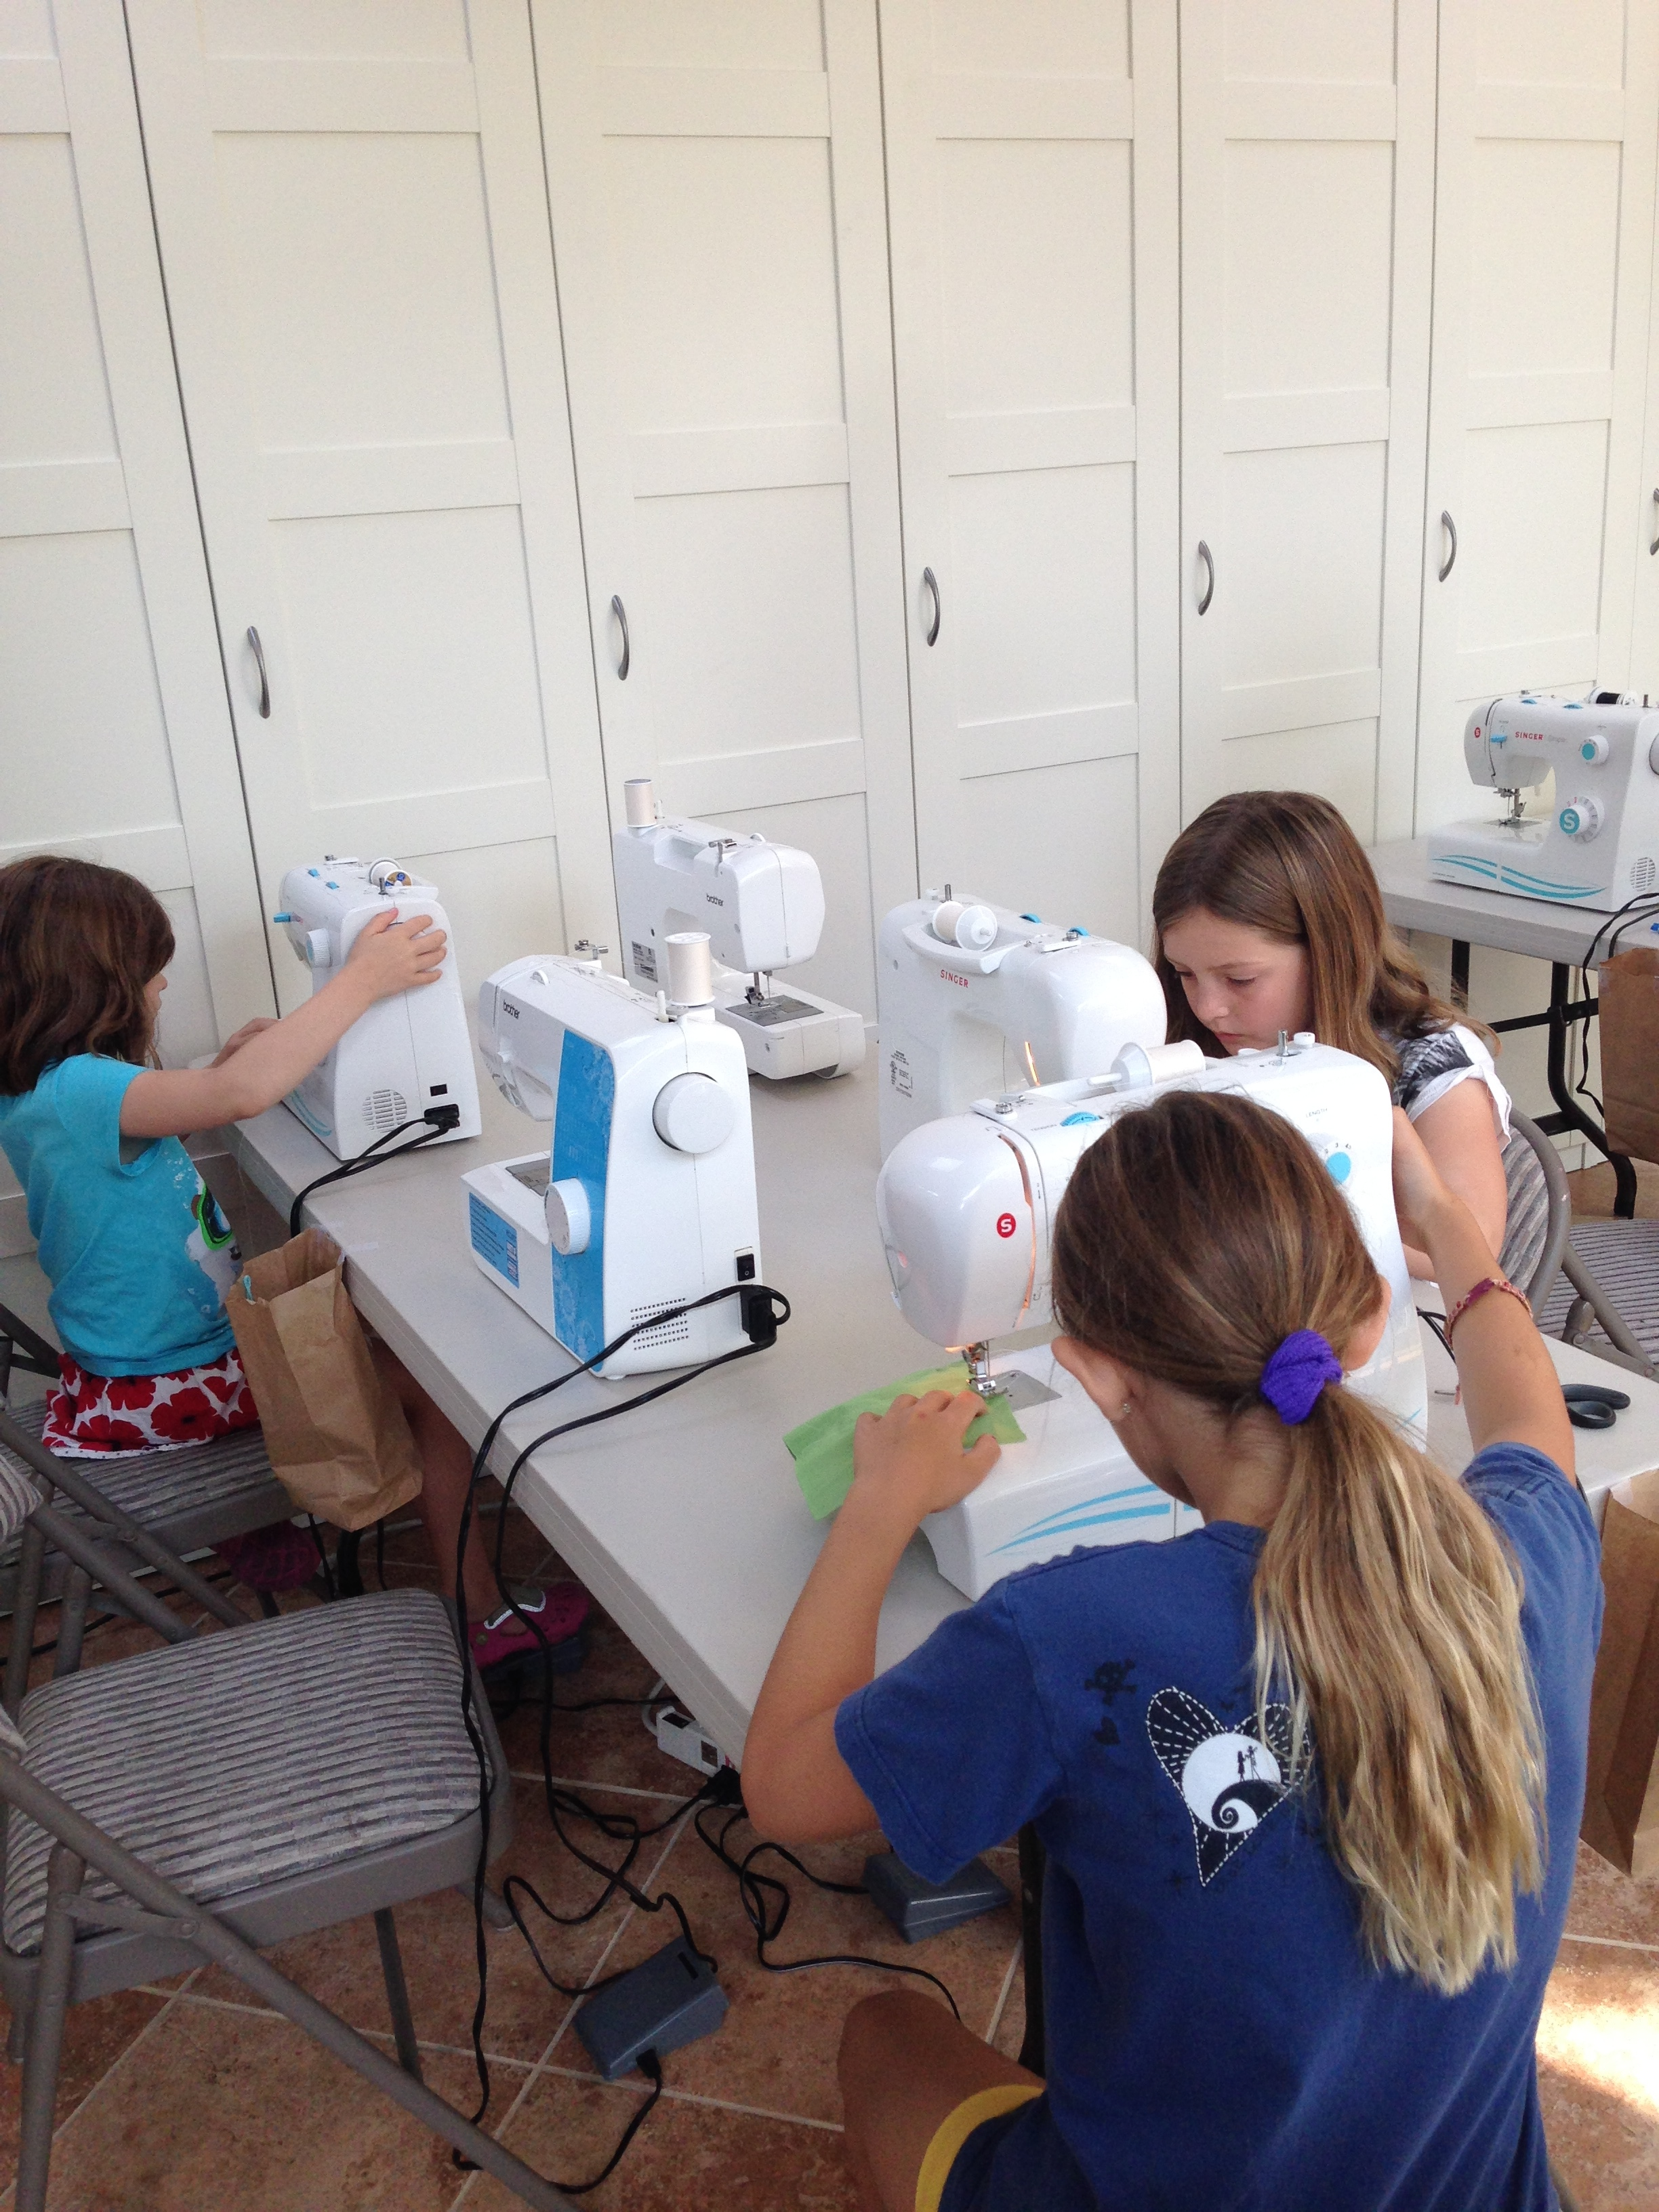 New students learning to use the sewing machines.